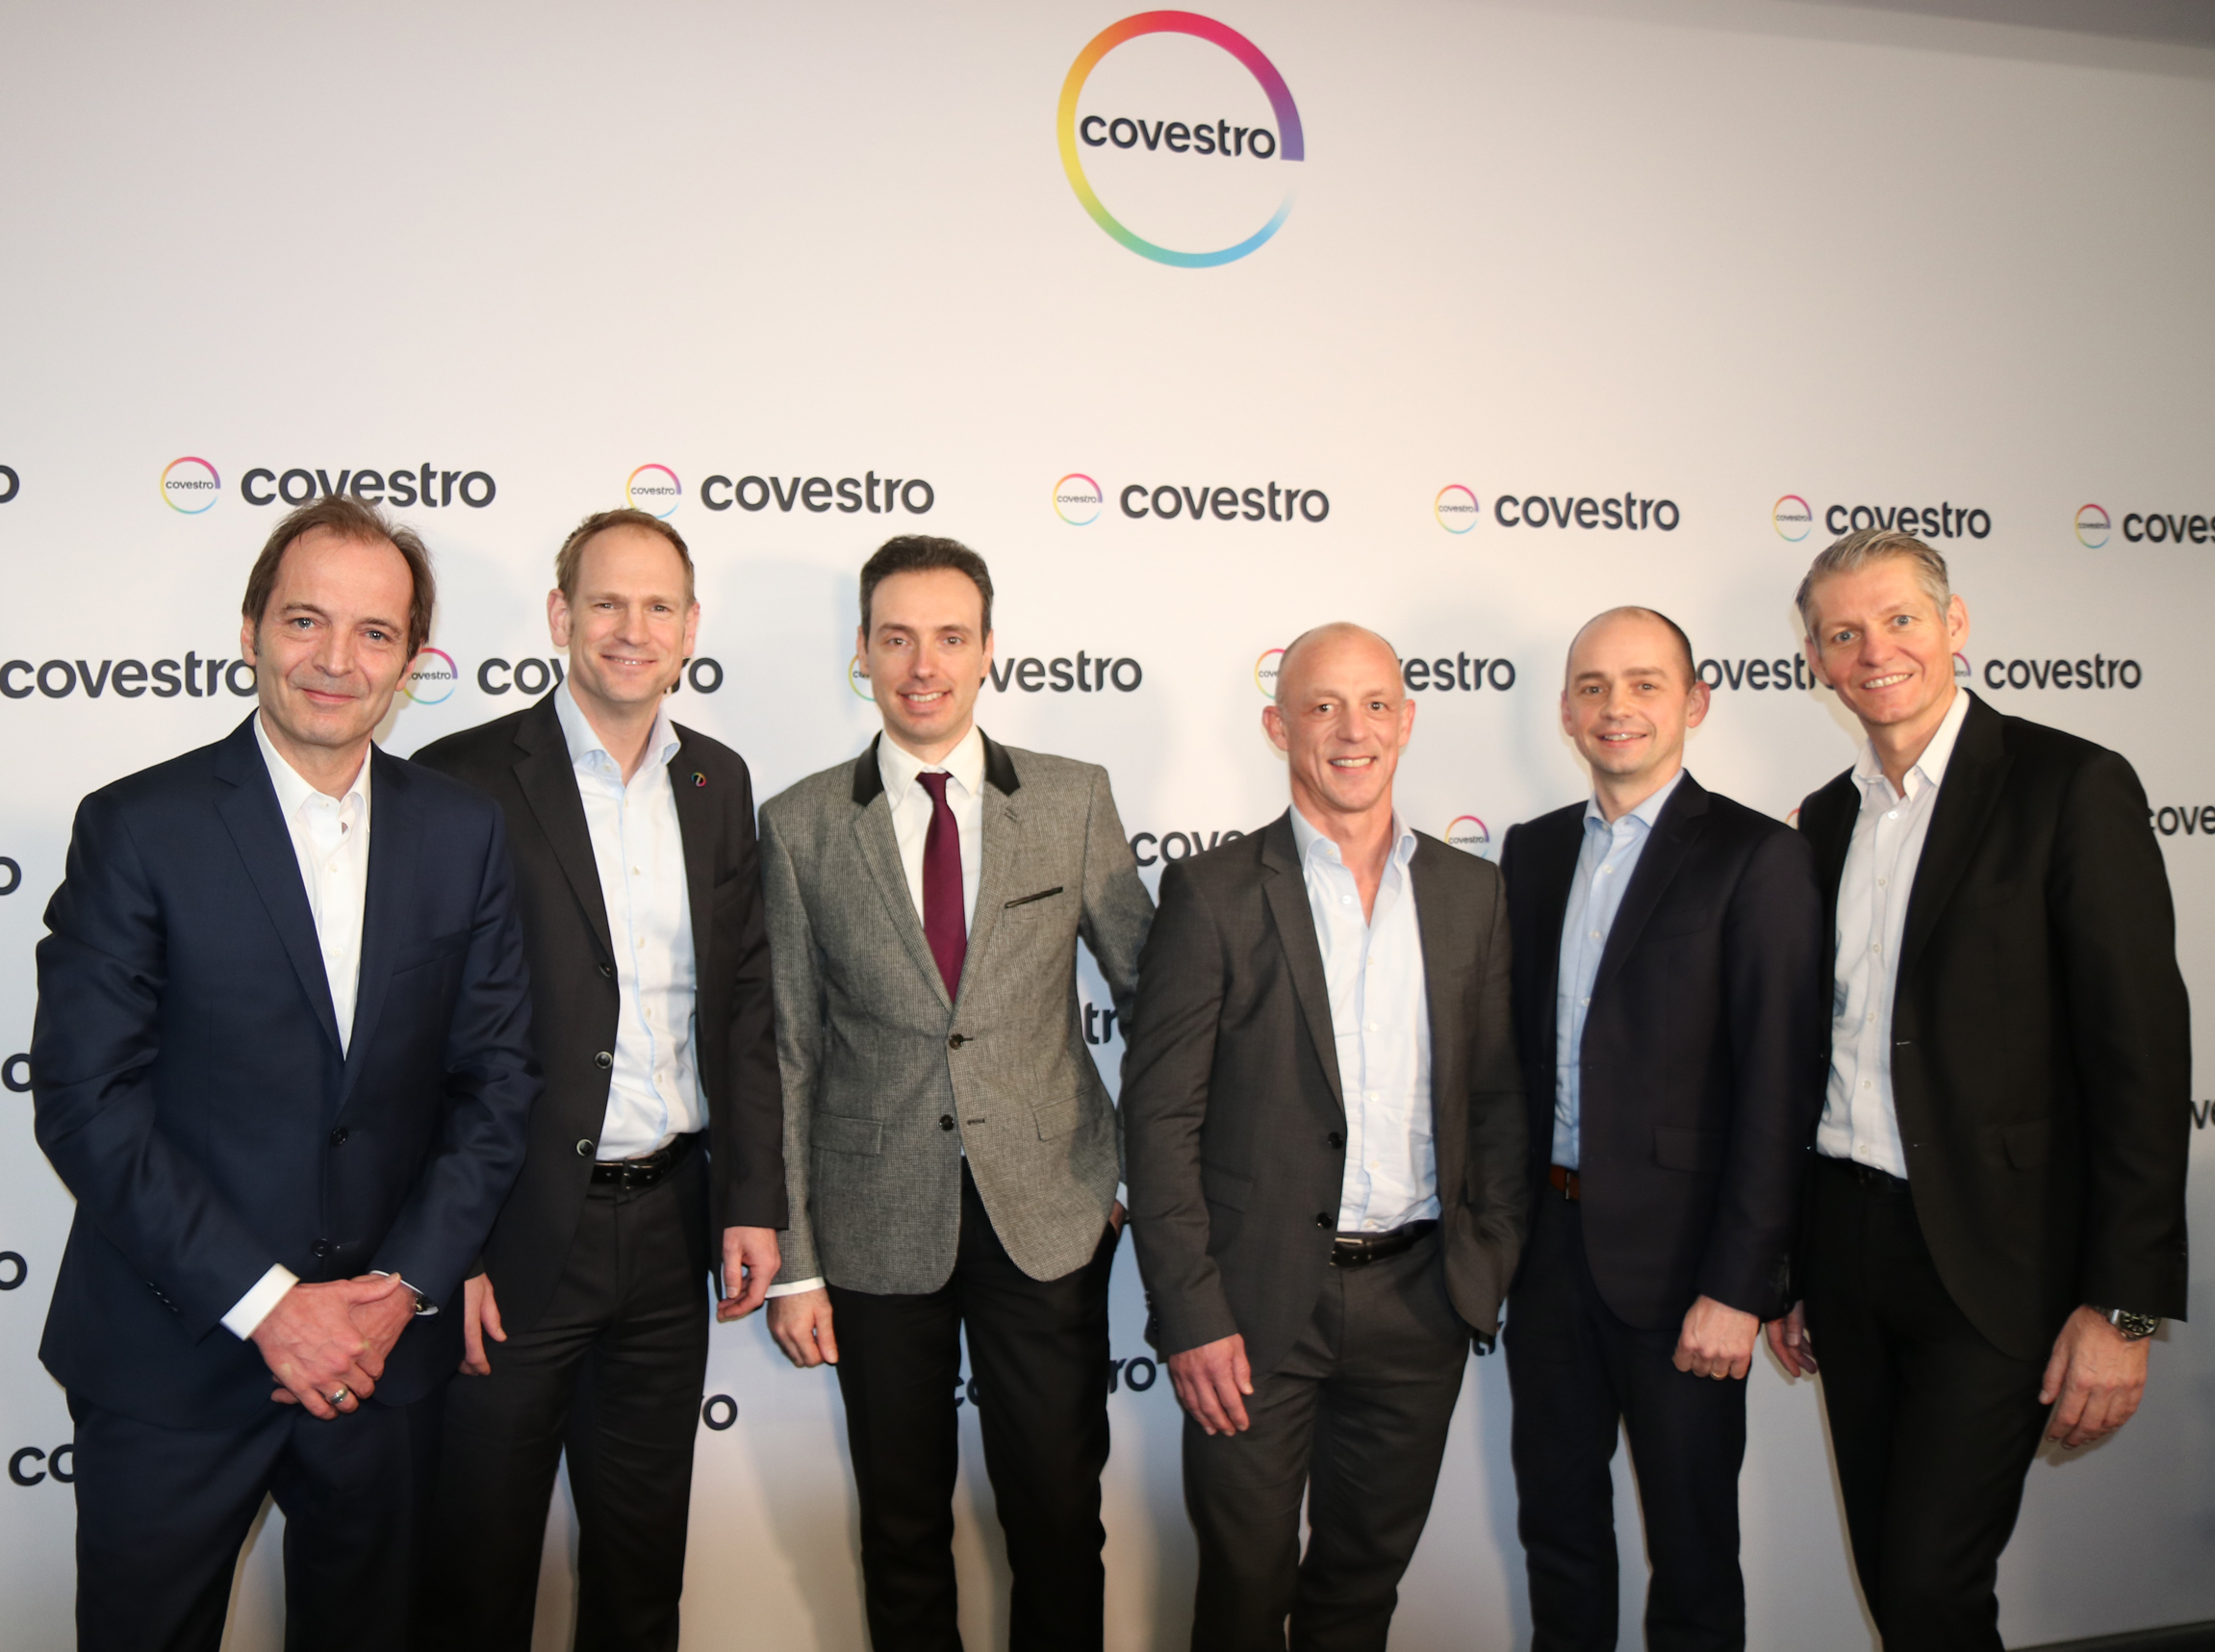 Dr. Thorsten Dreier, global head of Covestro´s special films business (second from left), and Cosimo Prete, president and founder of C.S.T (third from left). (Source: Covestro)